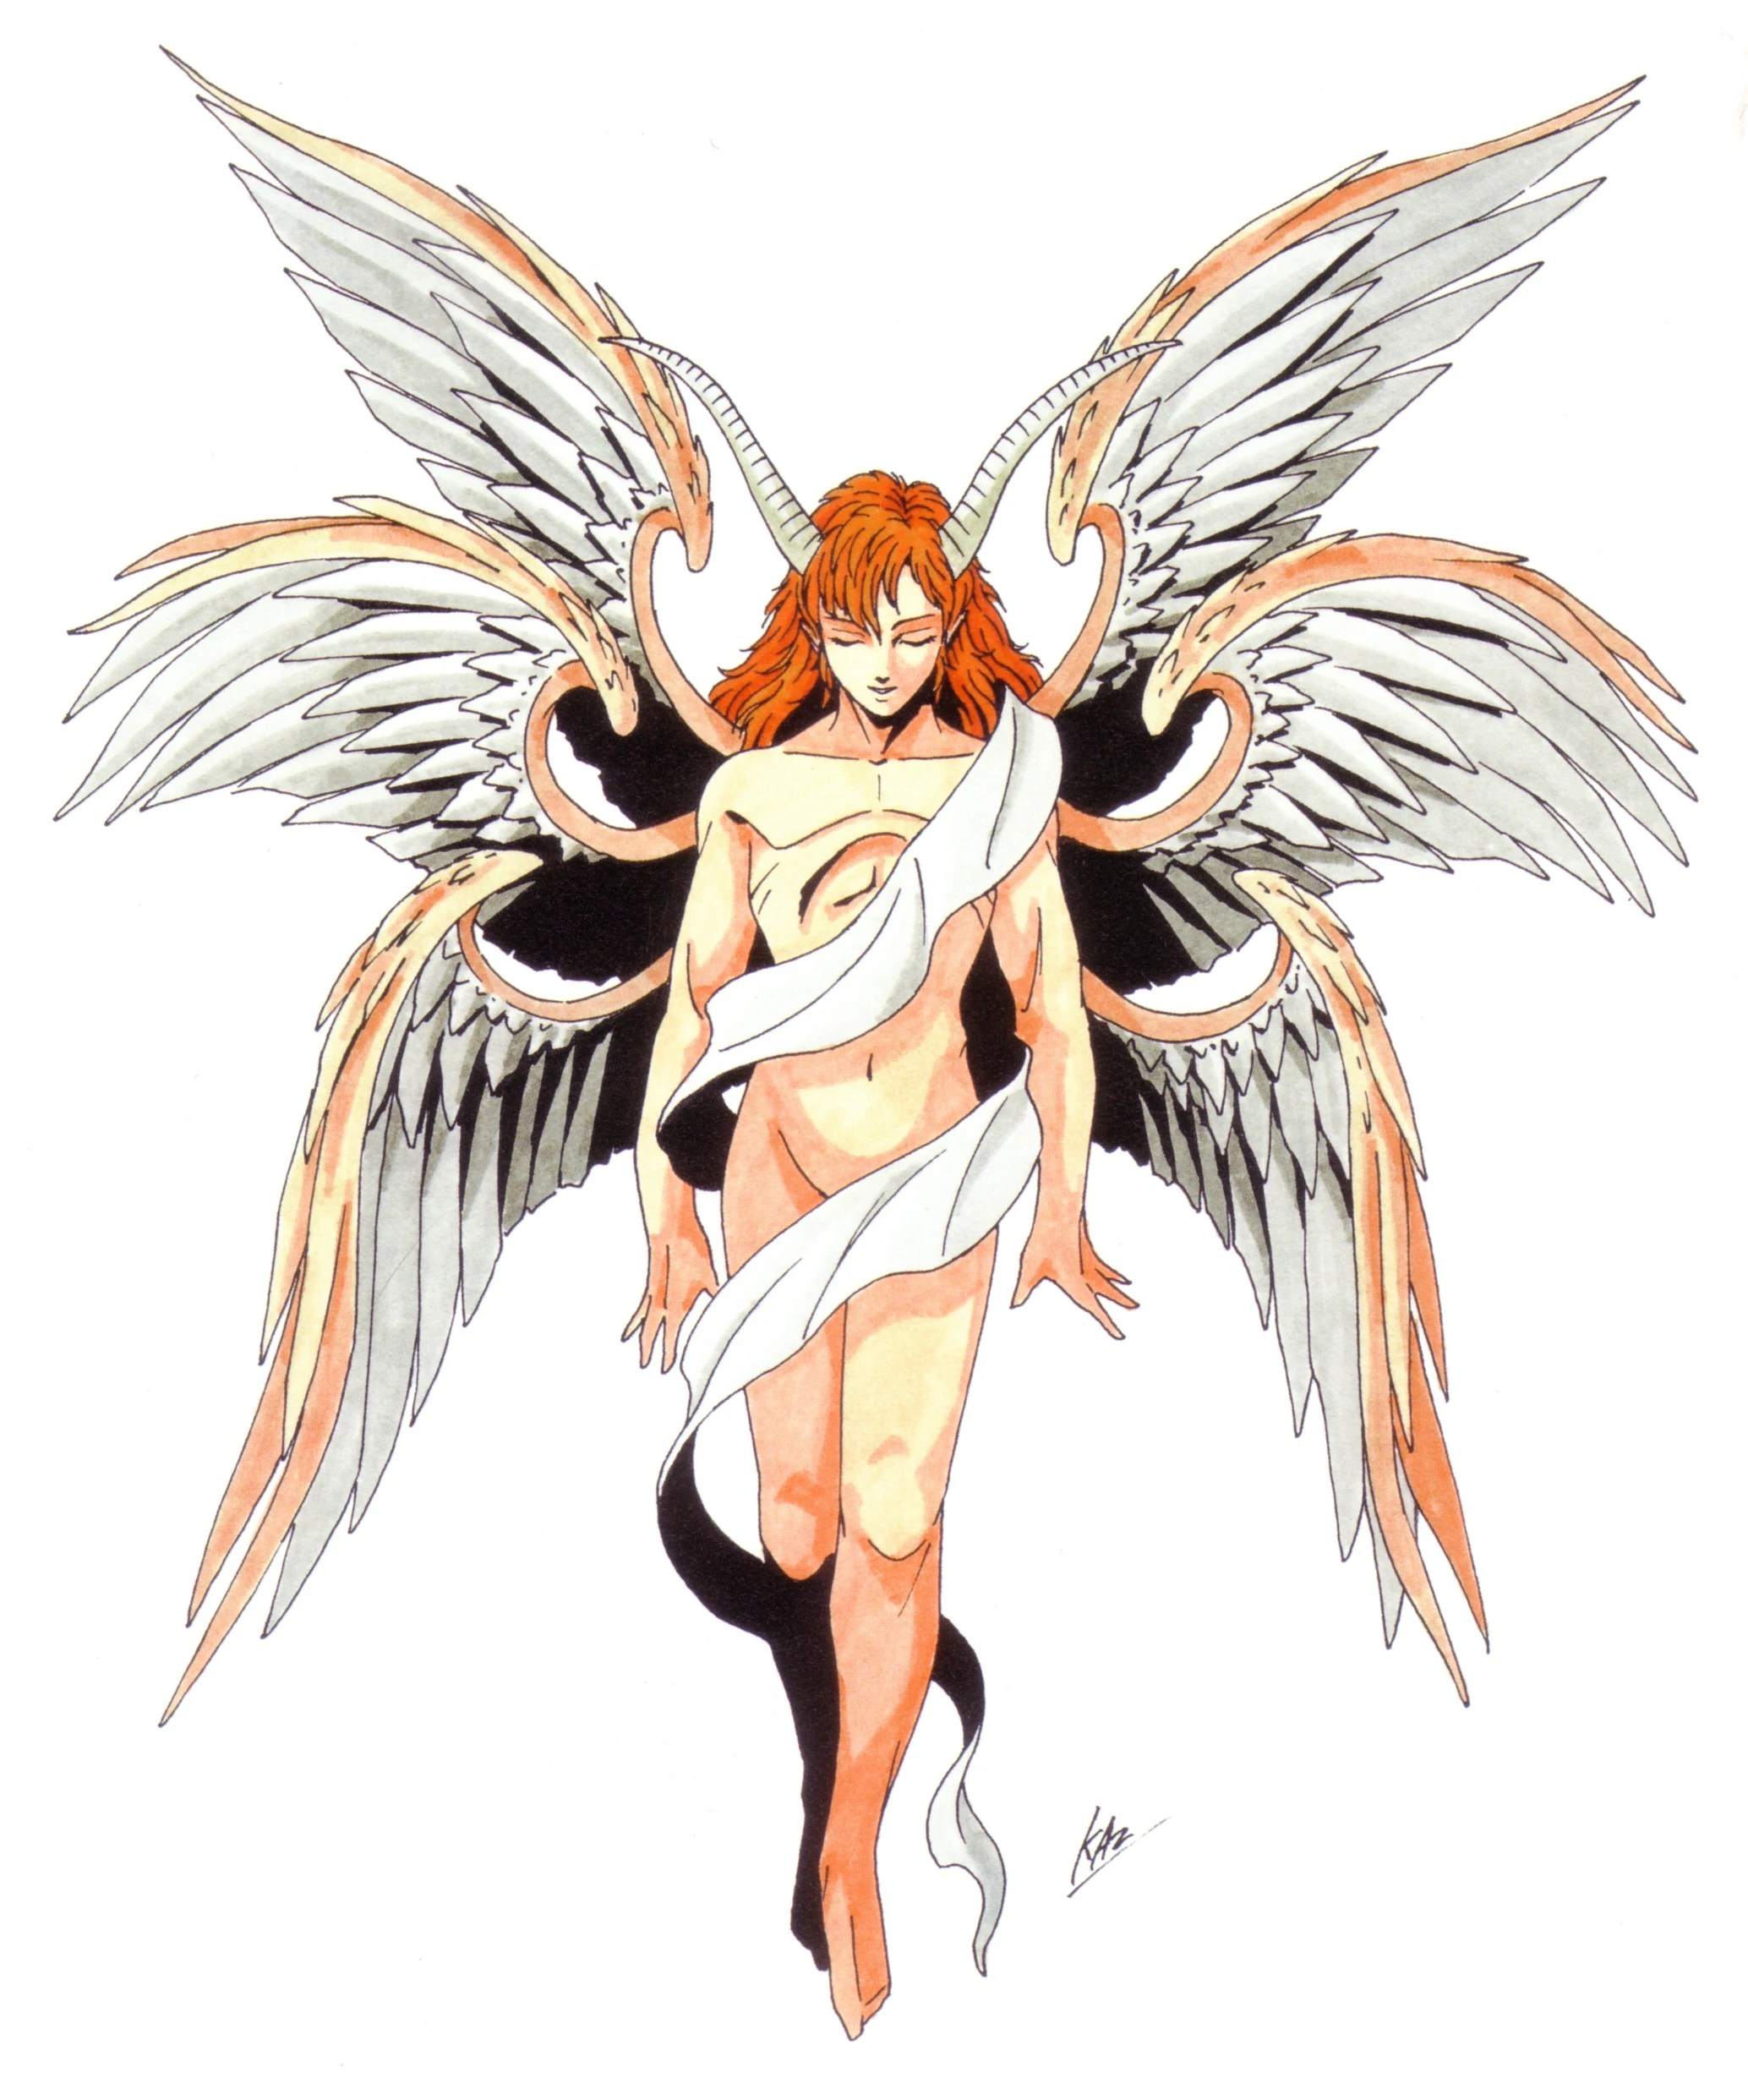 Lucifer in the Shin Megami Tensei series, who apparently looks gorgeous.